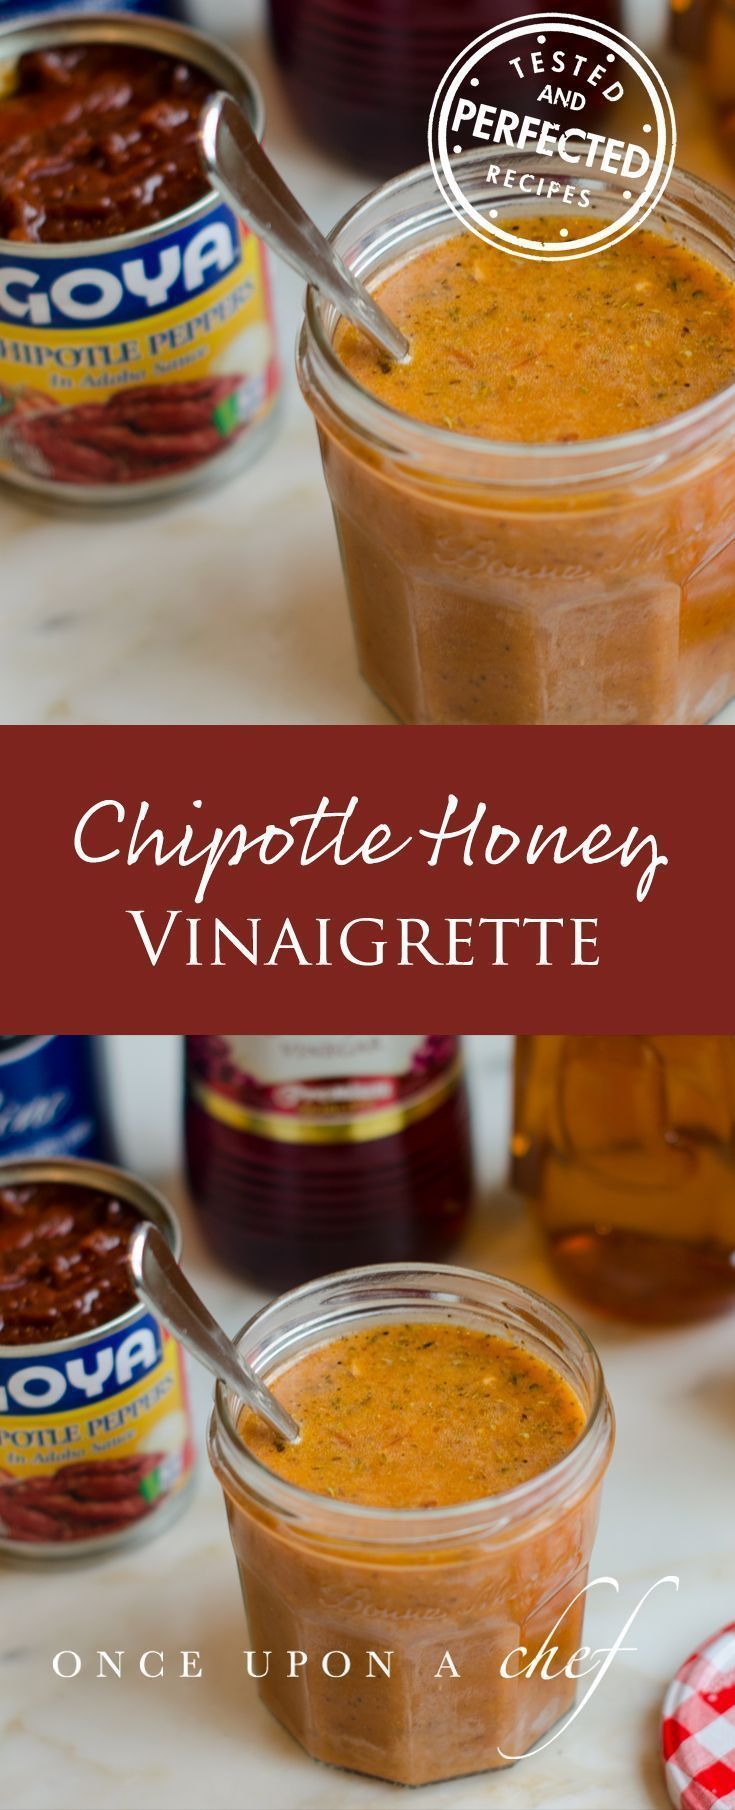 Copycat Recipe: Chipotle Mexican Grill's Chipotle Honey Vinaigrette #saladdressing #chipotle #copycatrecipe